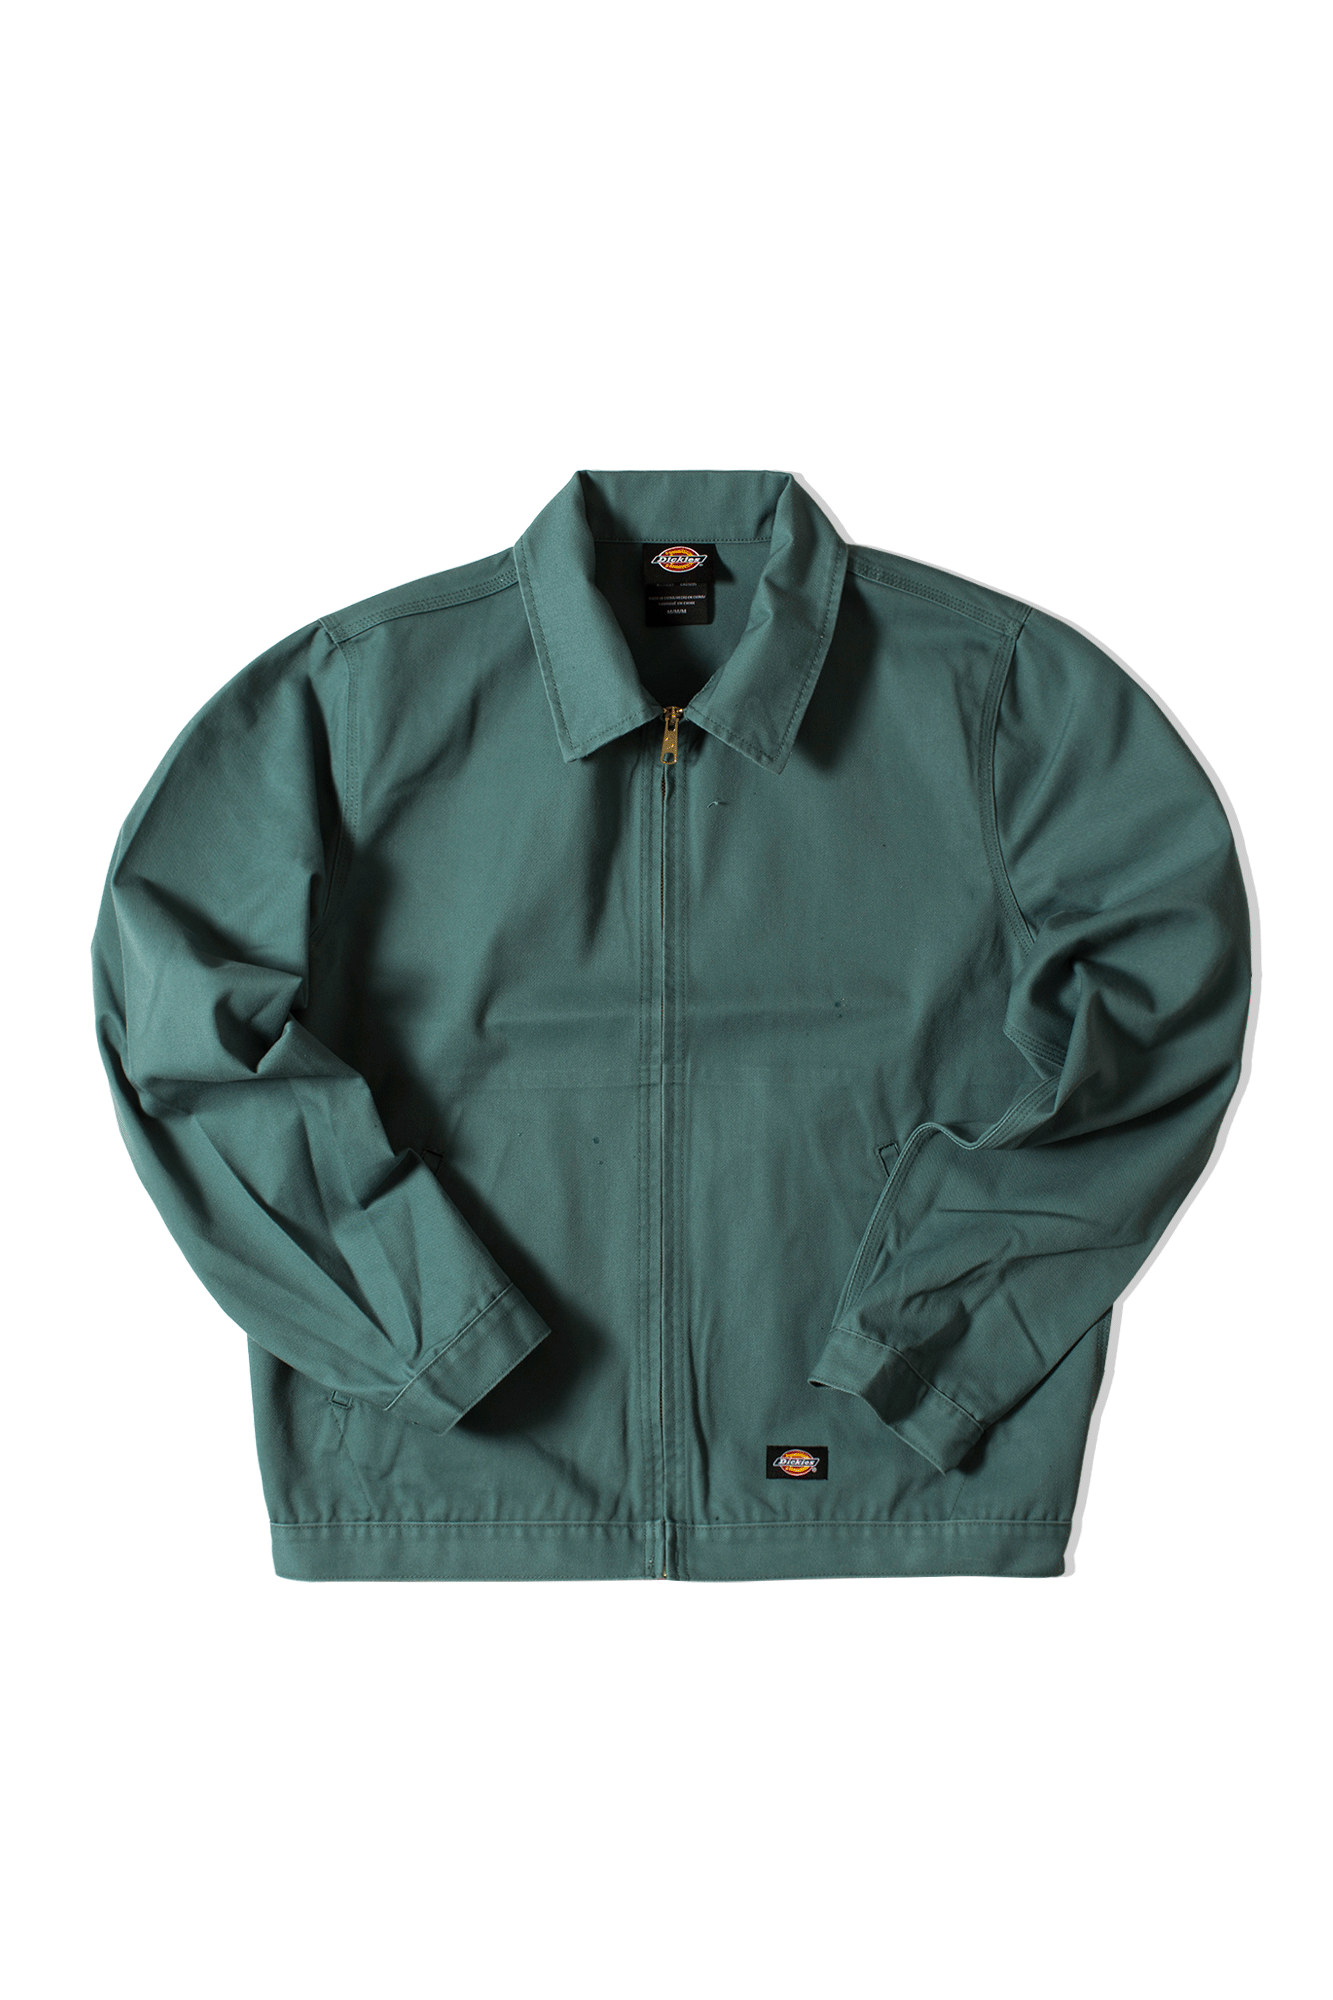 Dickies Jackets Unlined Eisenhower Jacket Green DK00JT75#000#LN0#S - One Block Down